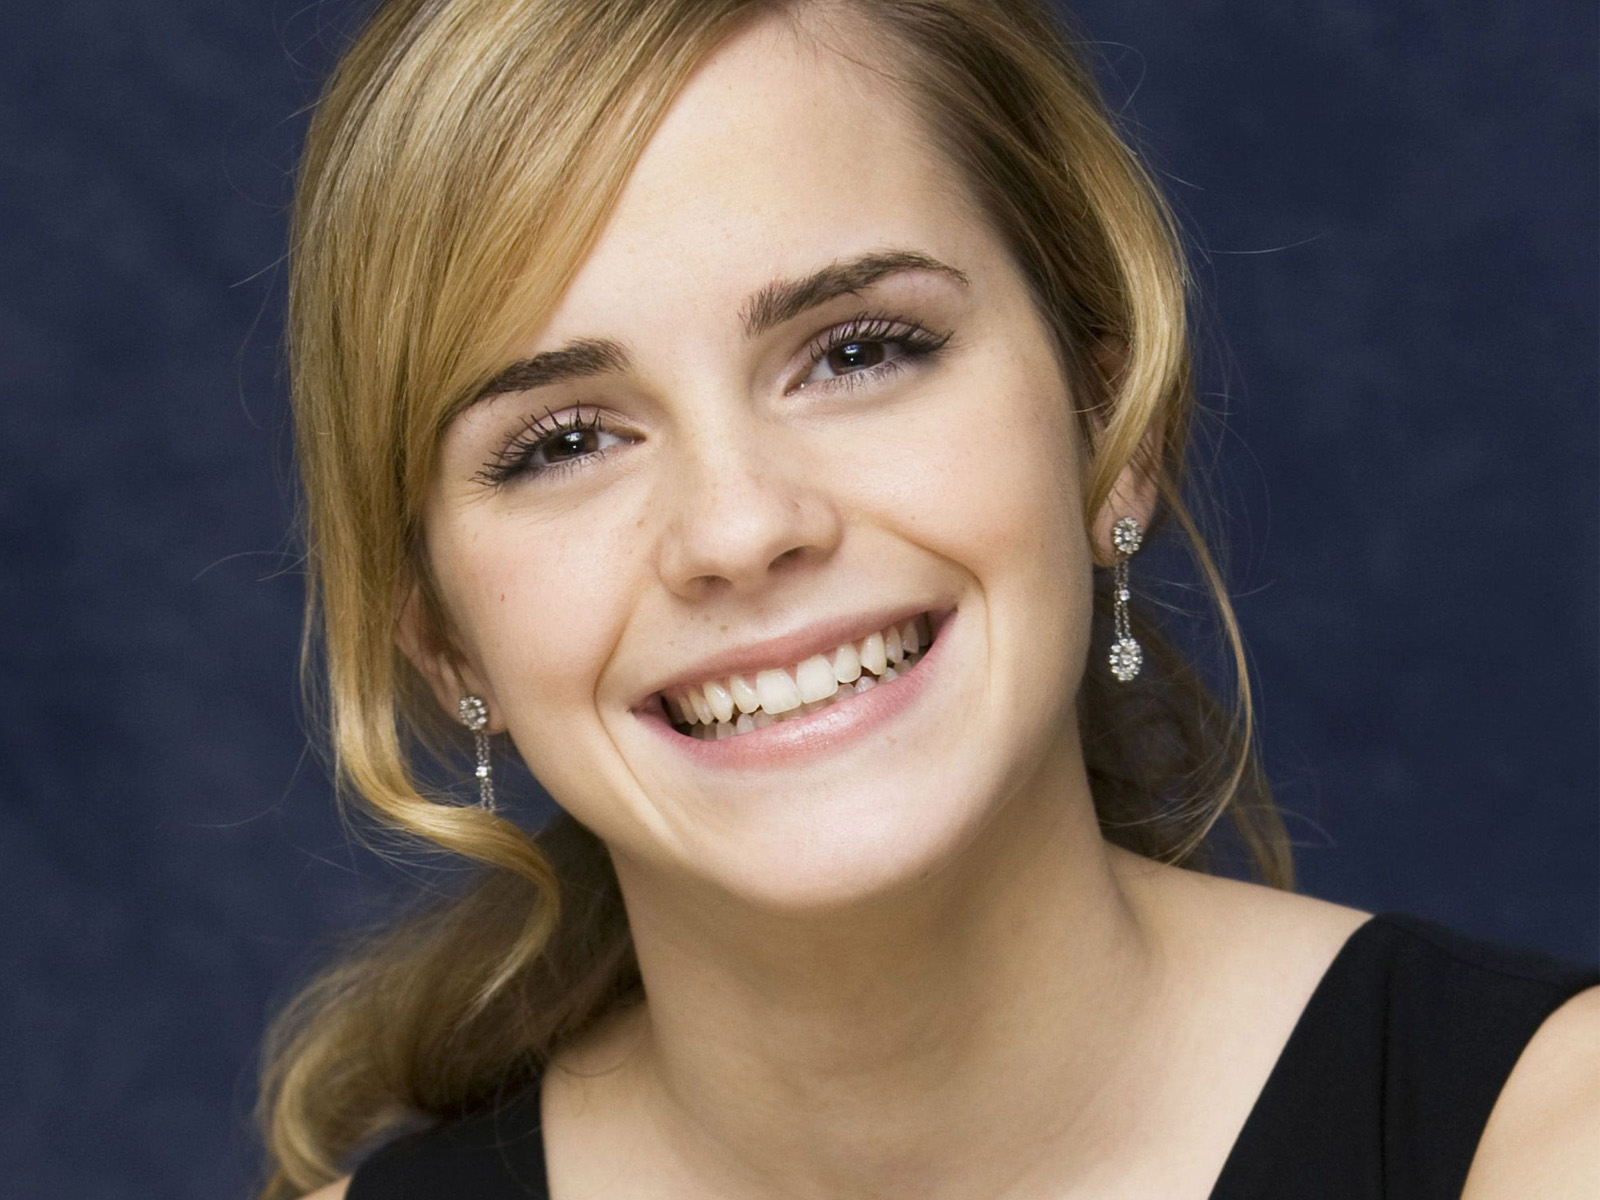 Emma Watson Beautiful Smile High Quality